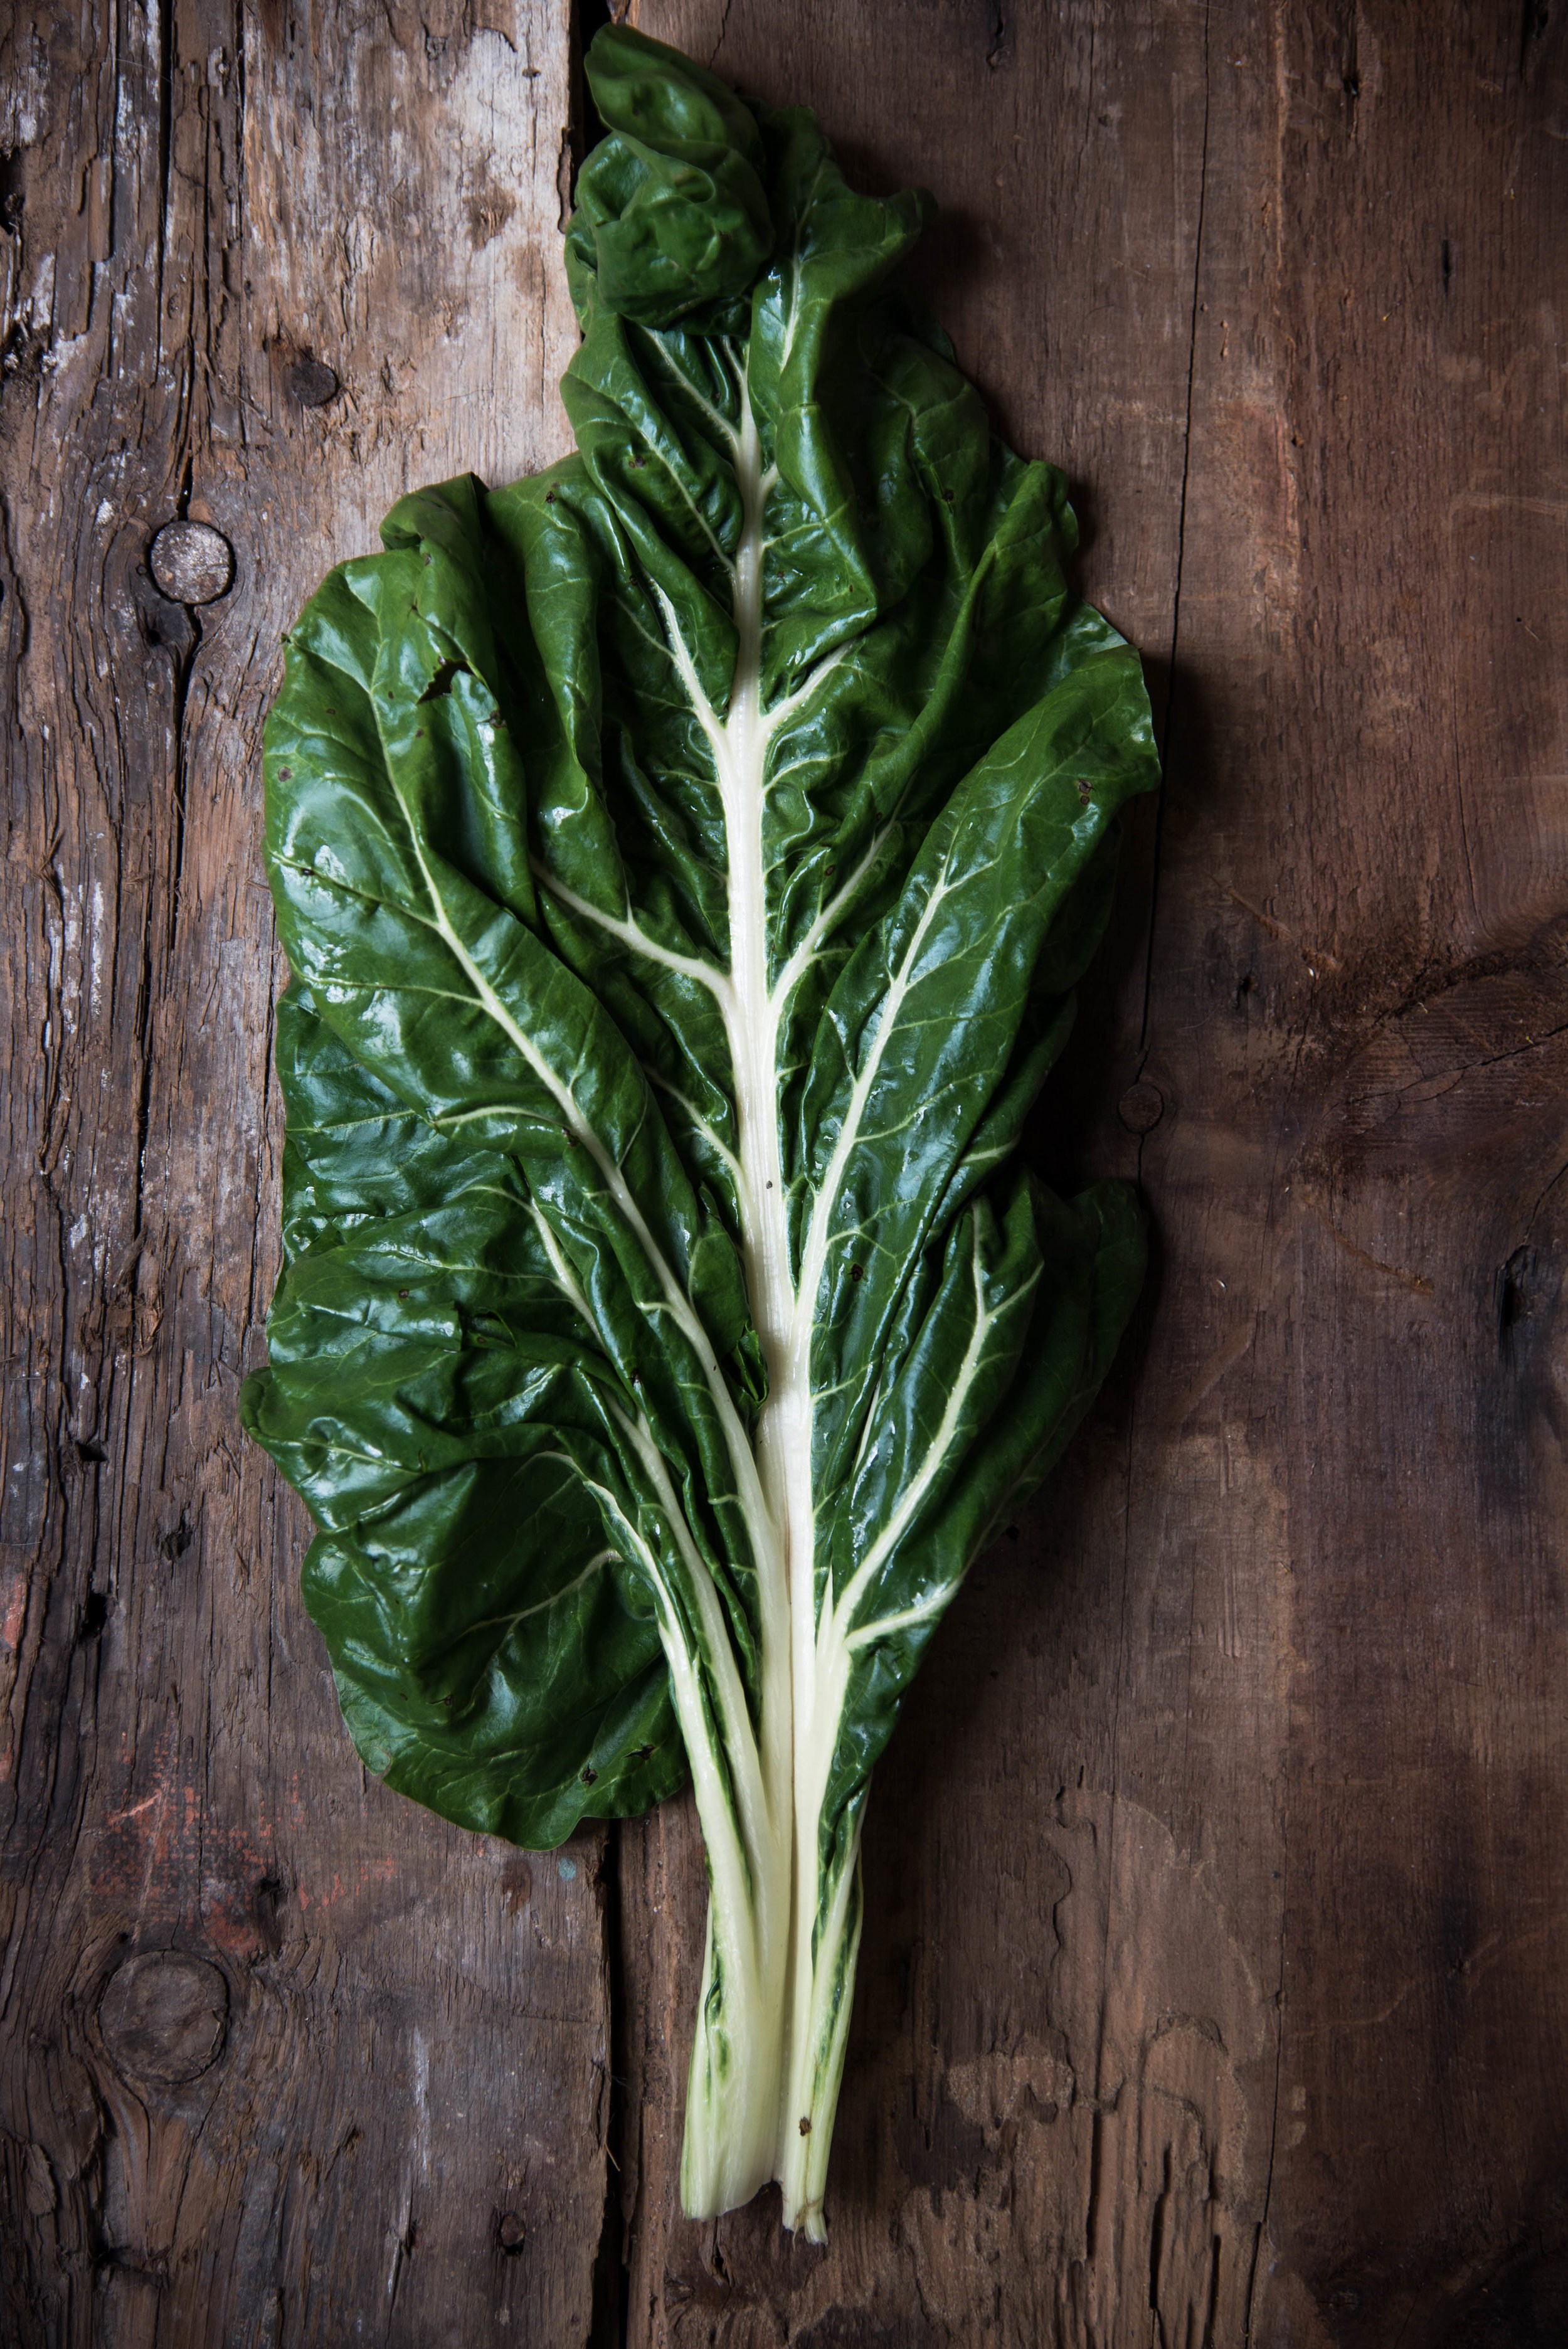 ROSE & IVY Journal Get to Know Your Greens Swiss Chard